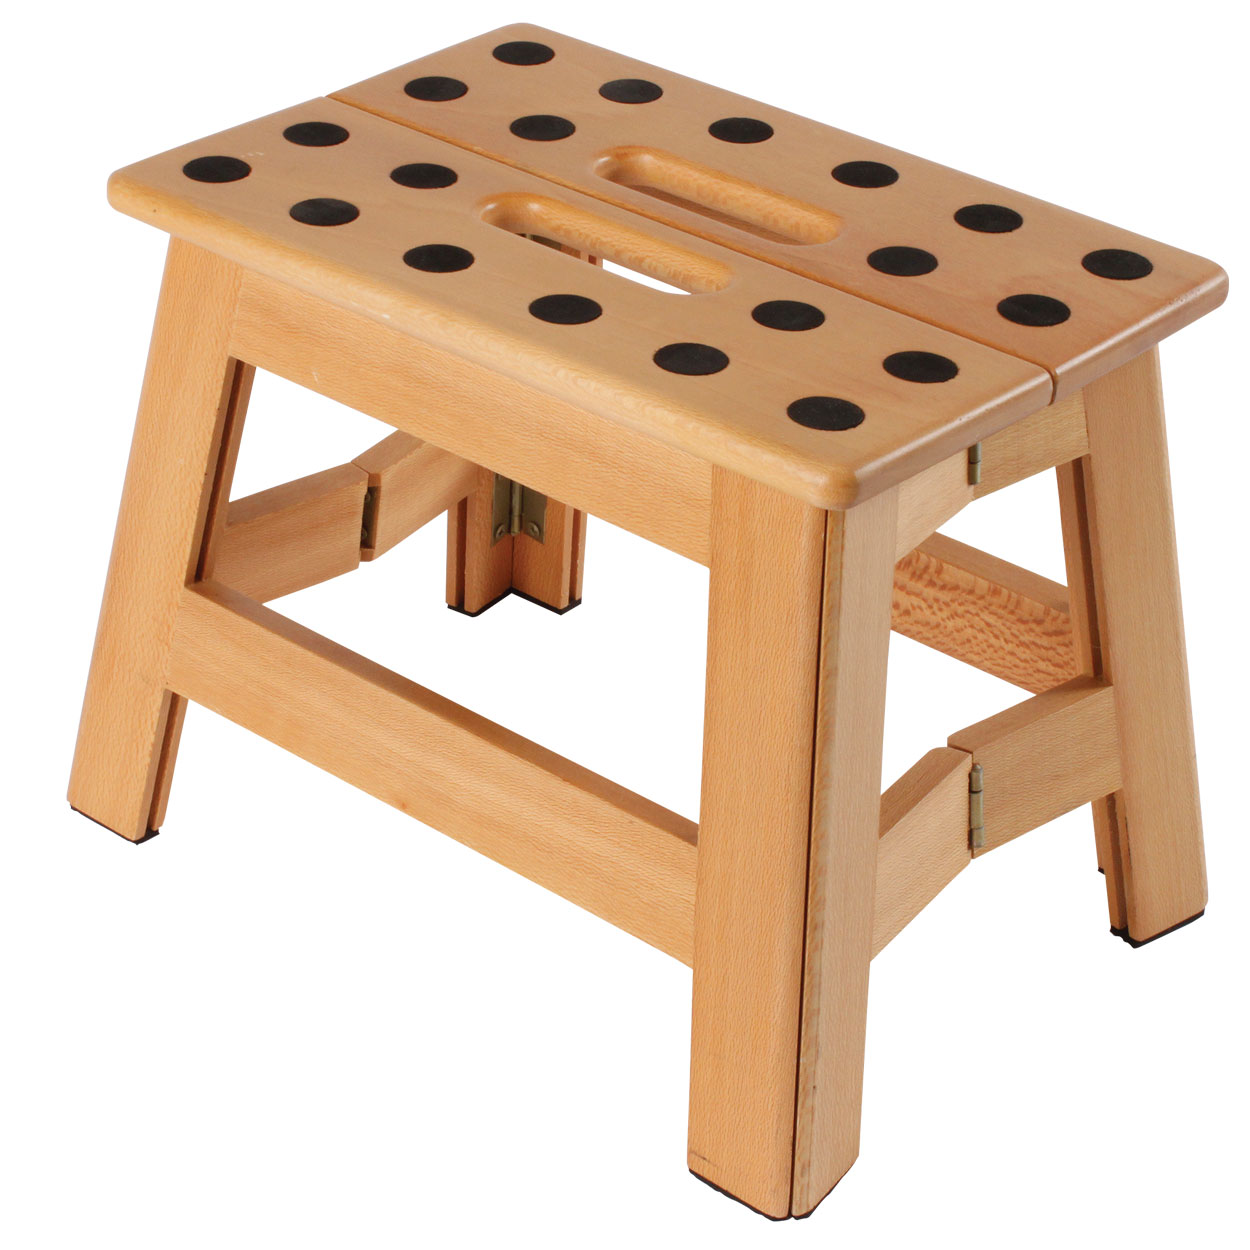 Winsome Bed Wooden Step Stool Hobby Lobby Stortford Wooden Step Stool Wooden Step Stool Just One Small Step Housewares Coopers houzz-03 Wooden Step Stool